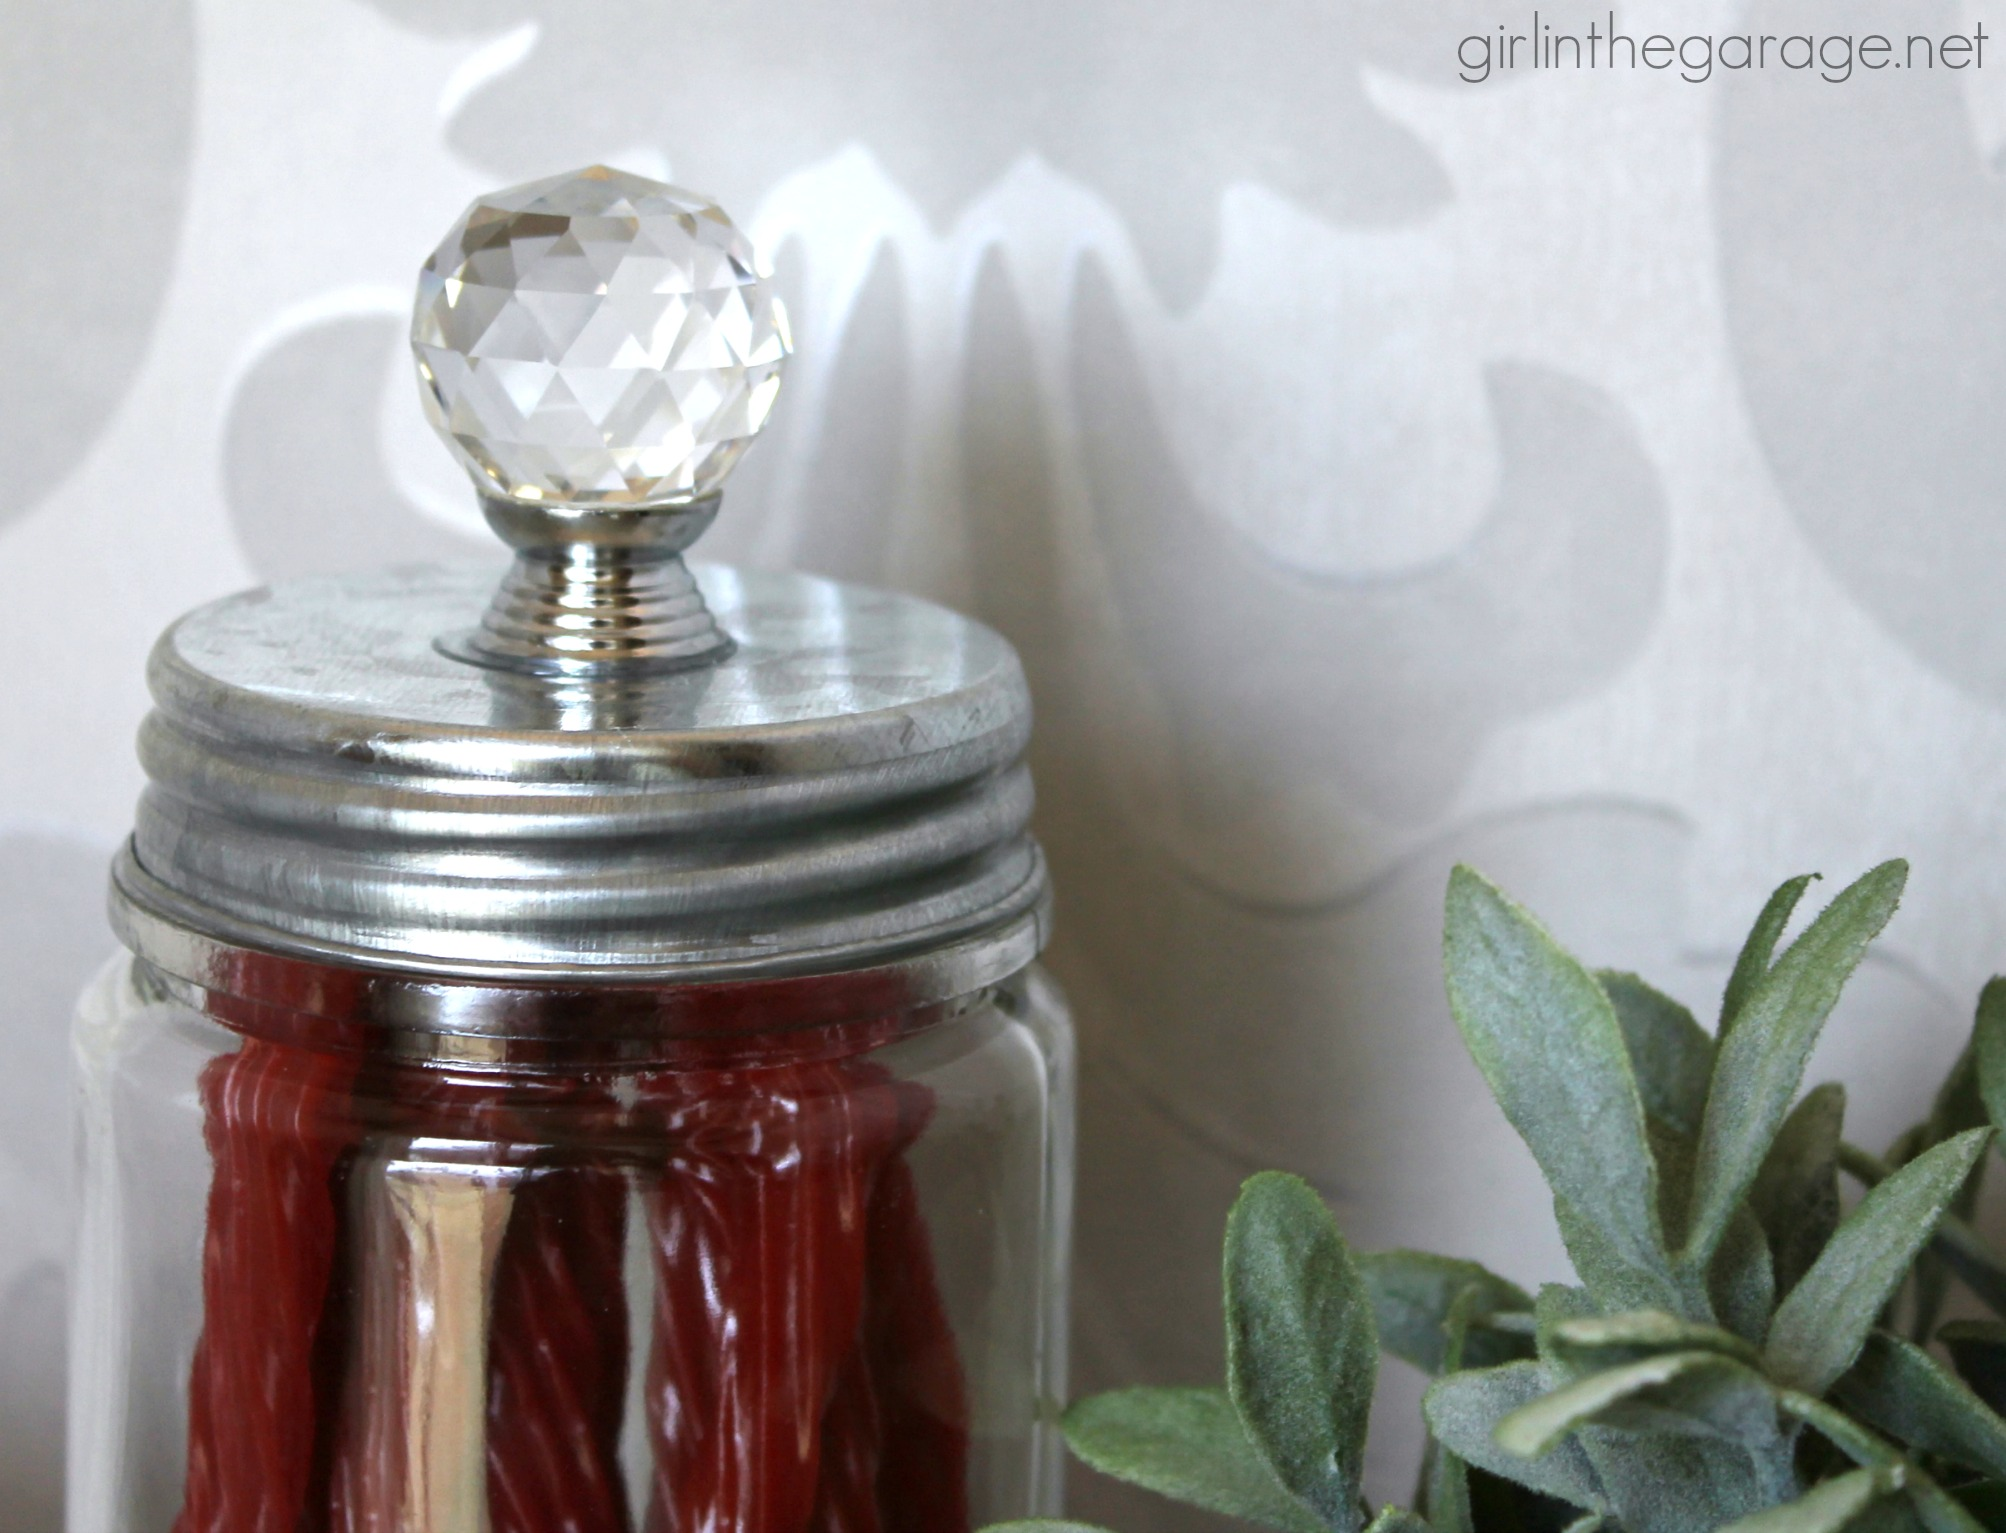 DIY Upcycled Glass Jars - so easy and cute! By Girl in the Garage